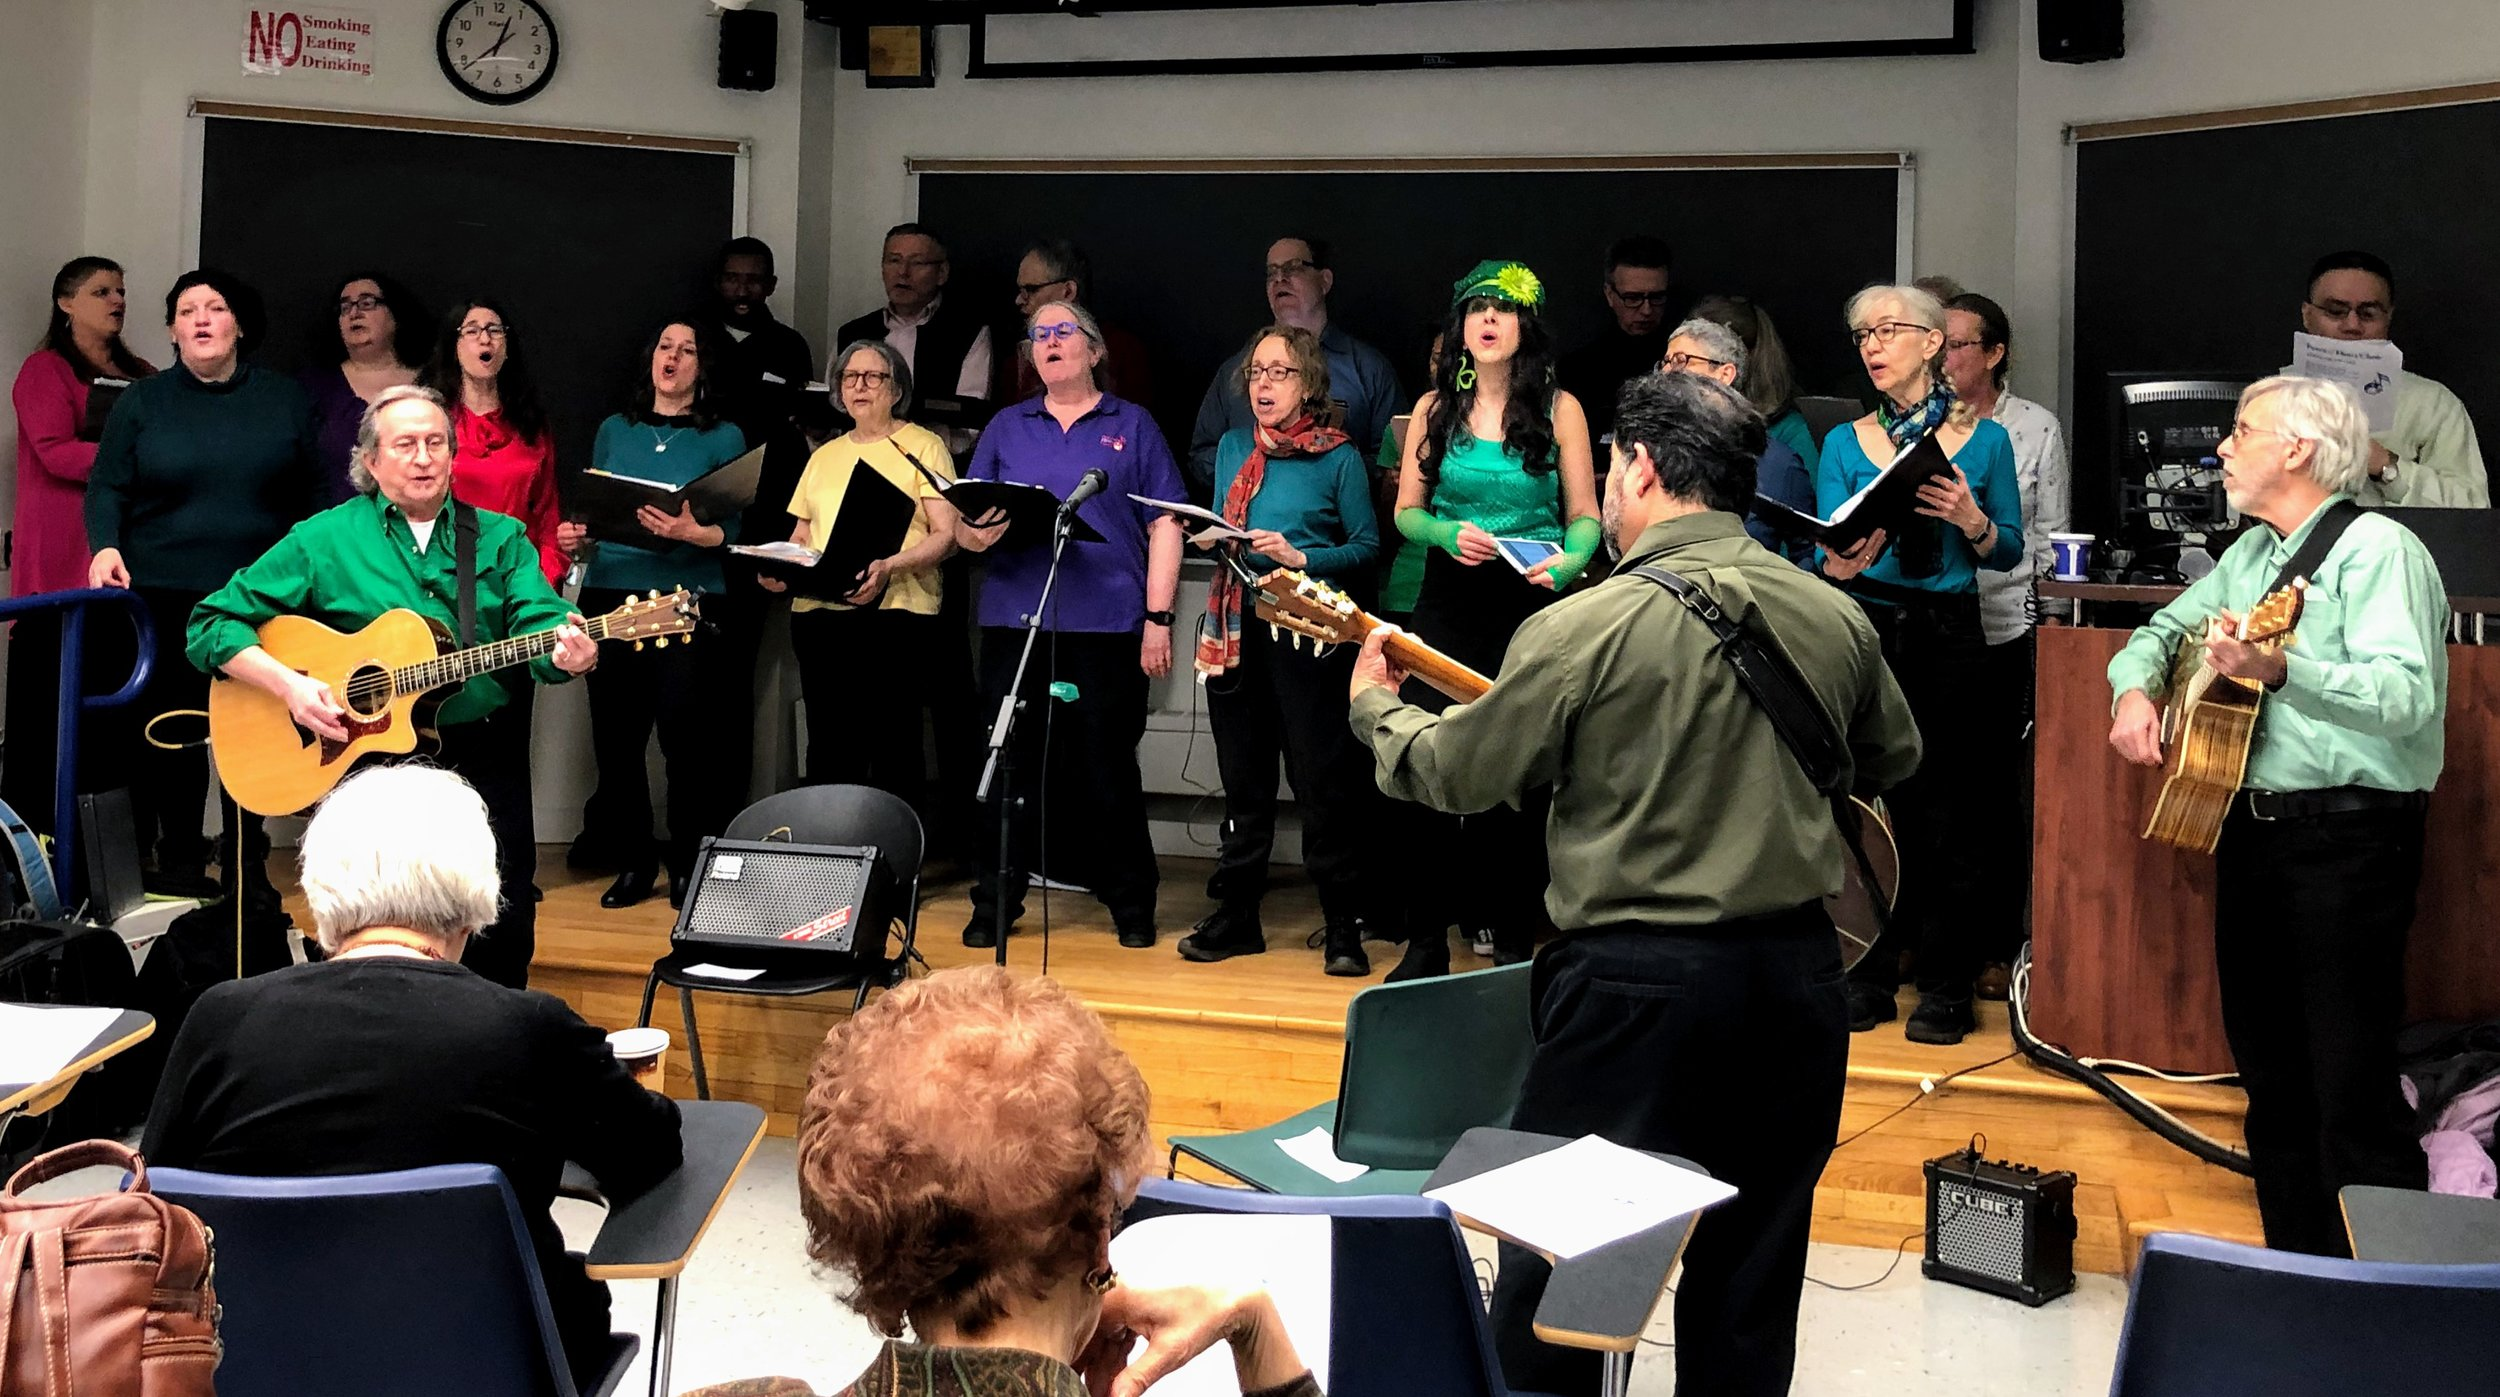 Three guitarists accompany the choir on the song,  Fragile ,   performed at  Sundays at JASA  .  JASA stands for the Jewish Association Serving the Aging .